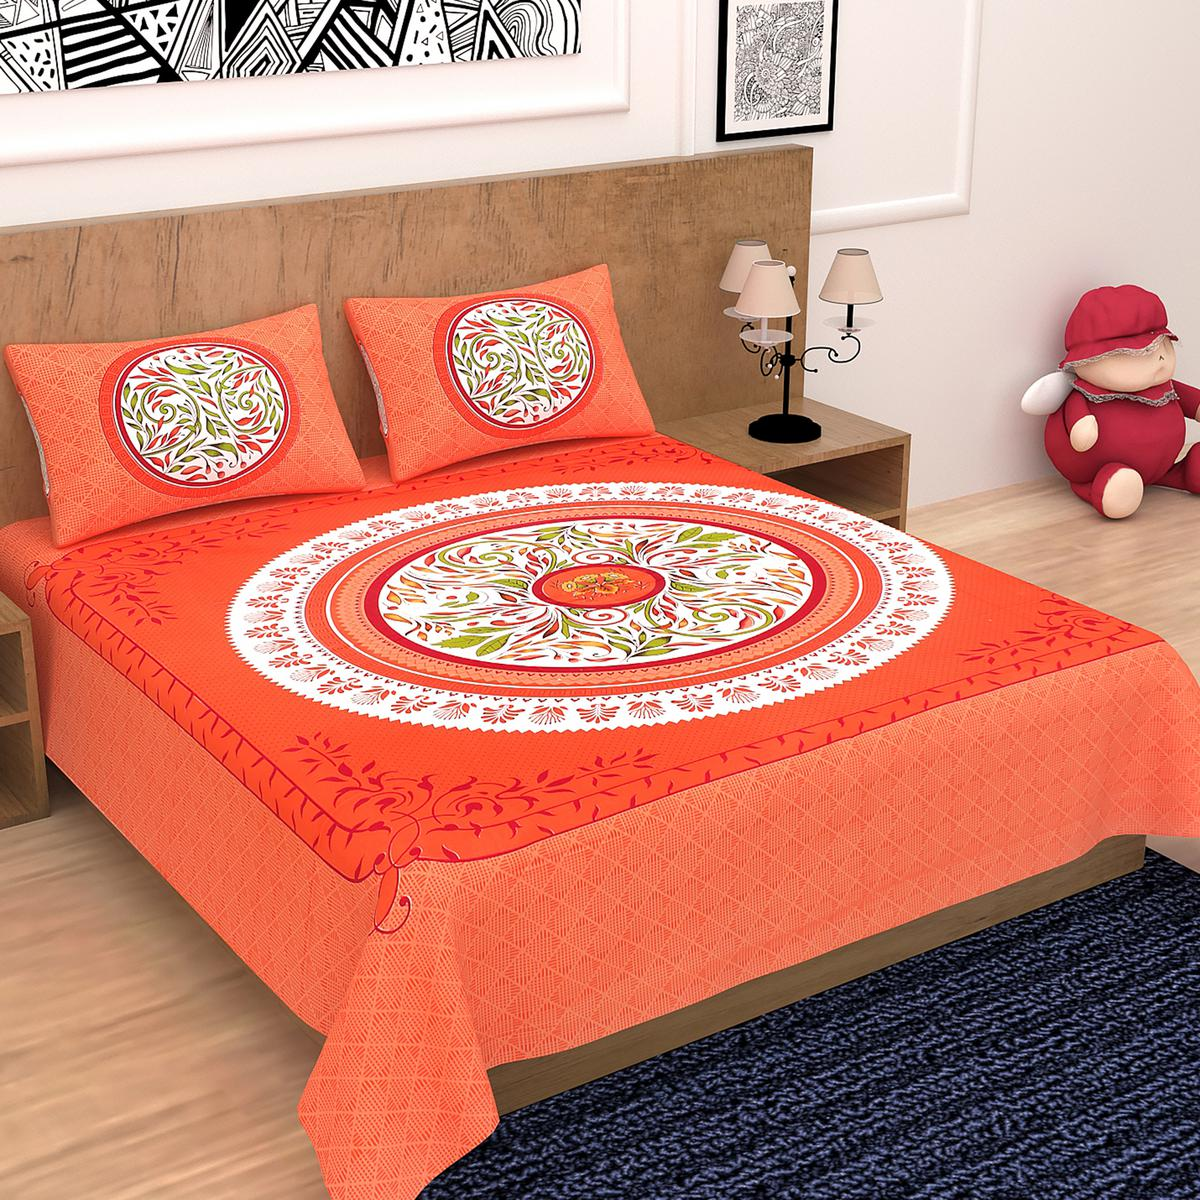 Diva Collection - Orange Queen Double Size Cotton Bedsheet With 2 Pillow Cover